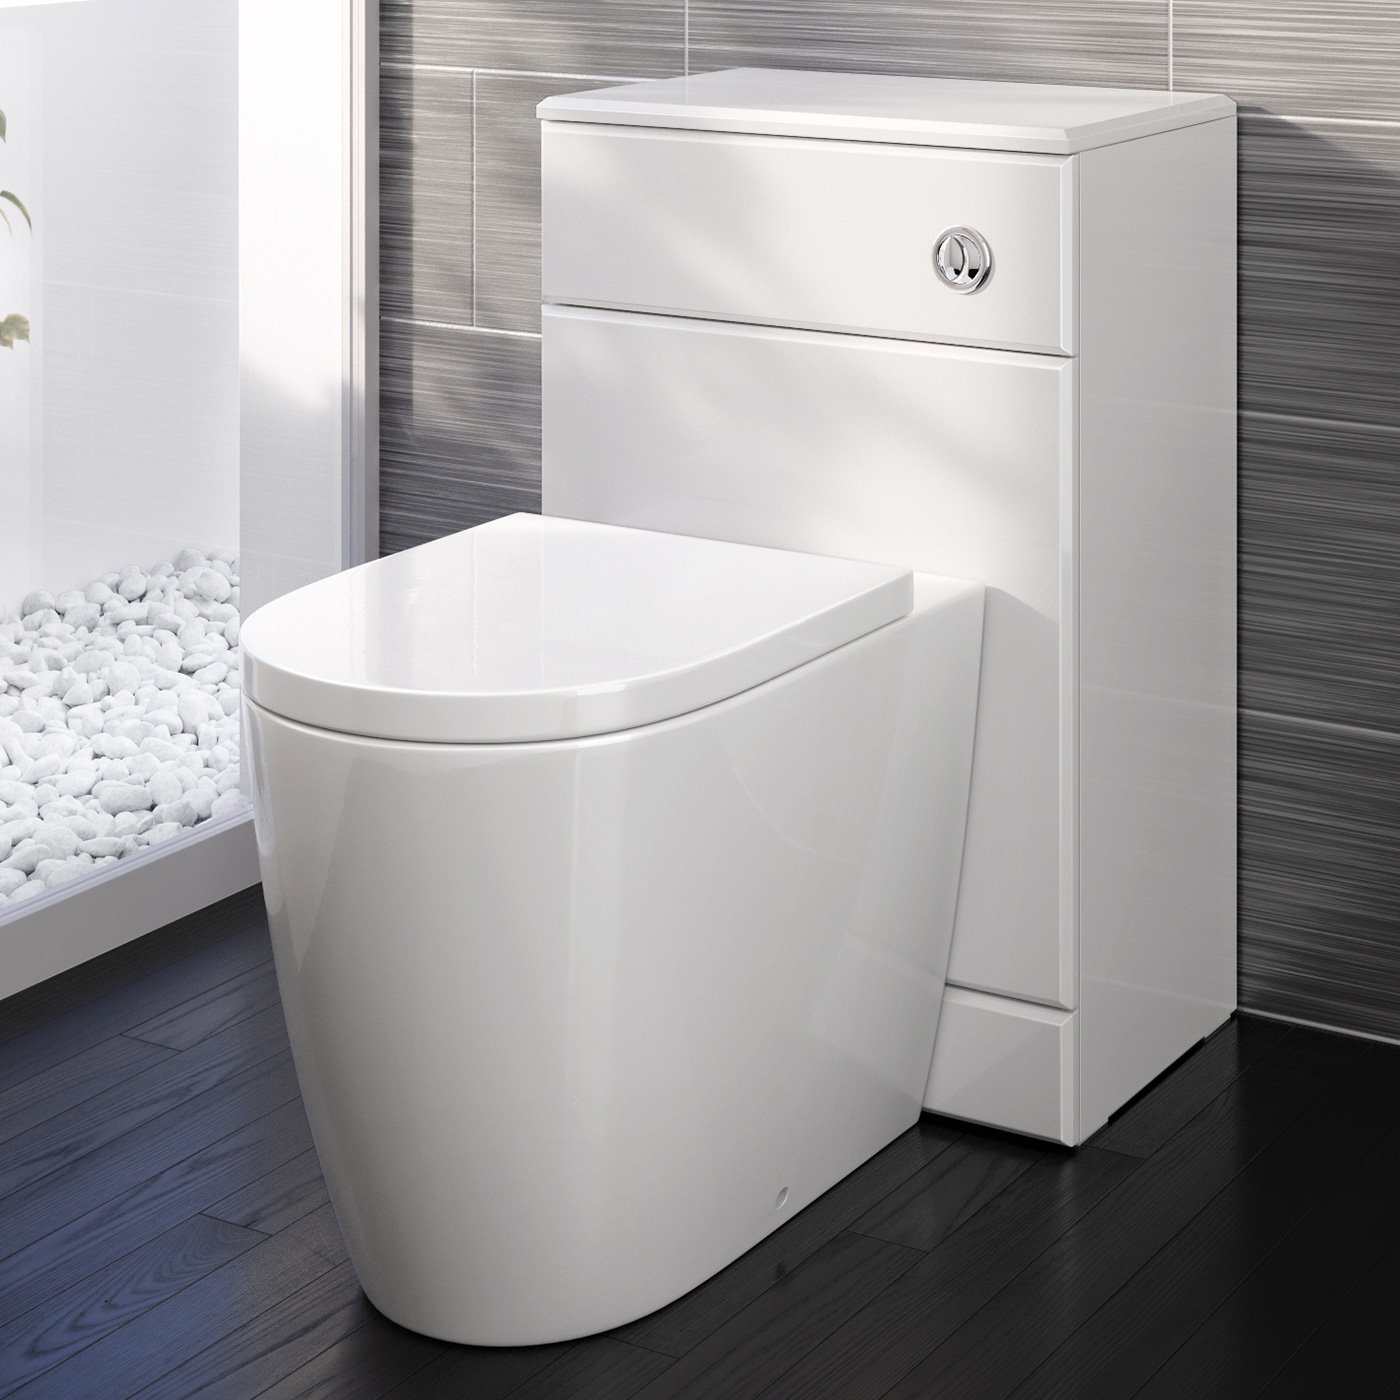 iBathUK Modern Back To Wall Toilet with Soft Close Seat White Gloss WC Furniture Unit BS882